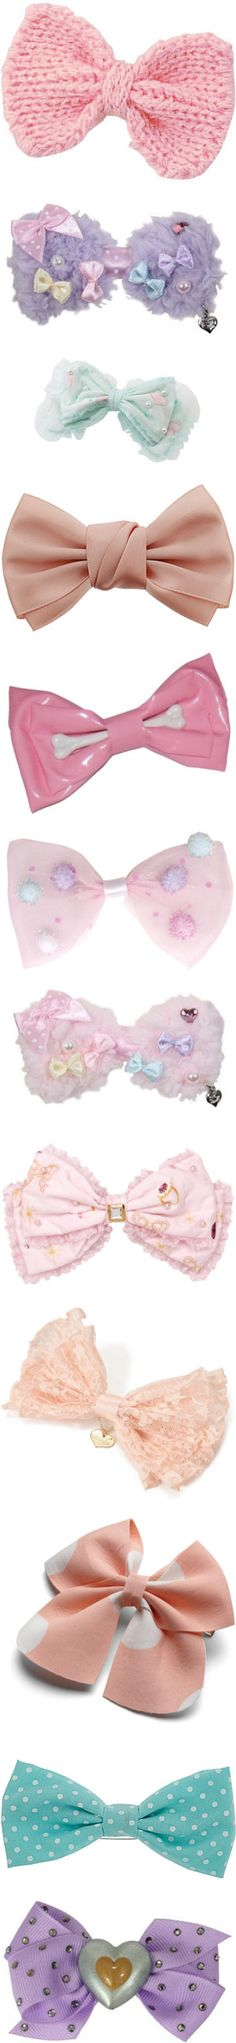 """Fairy Kei Hair Acessories"" by roseunspindle ❤ liked on Polyvore"